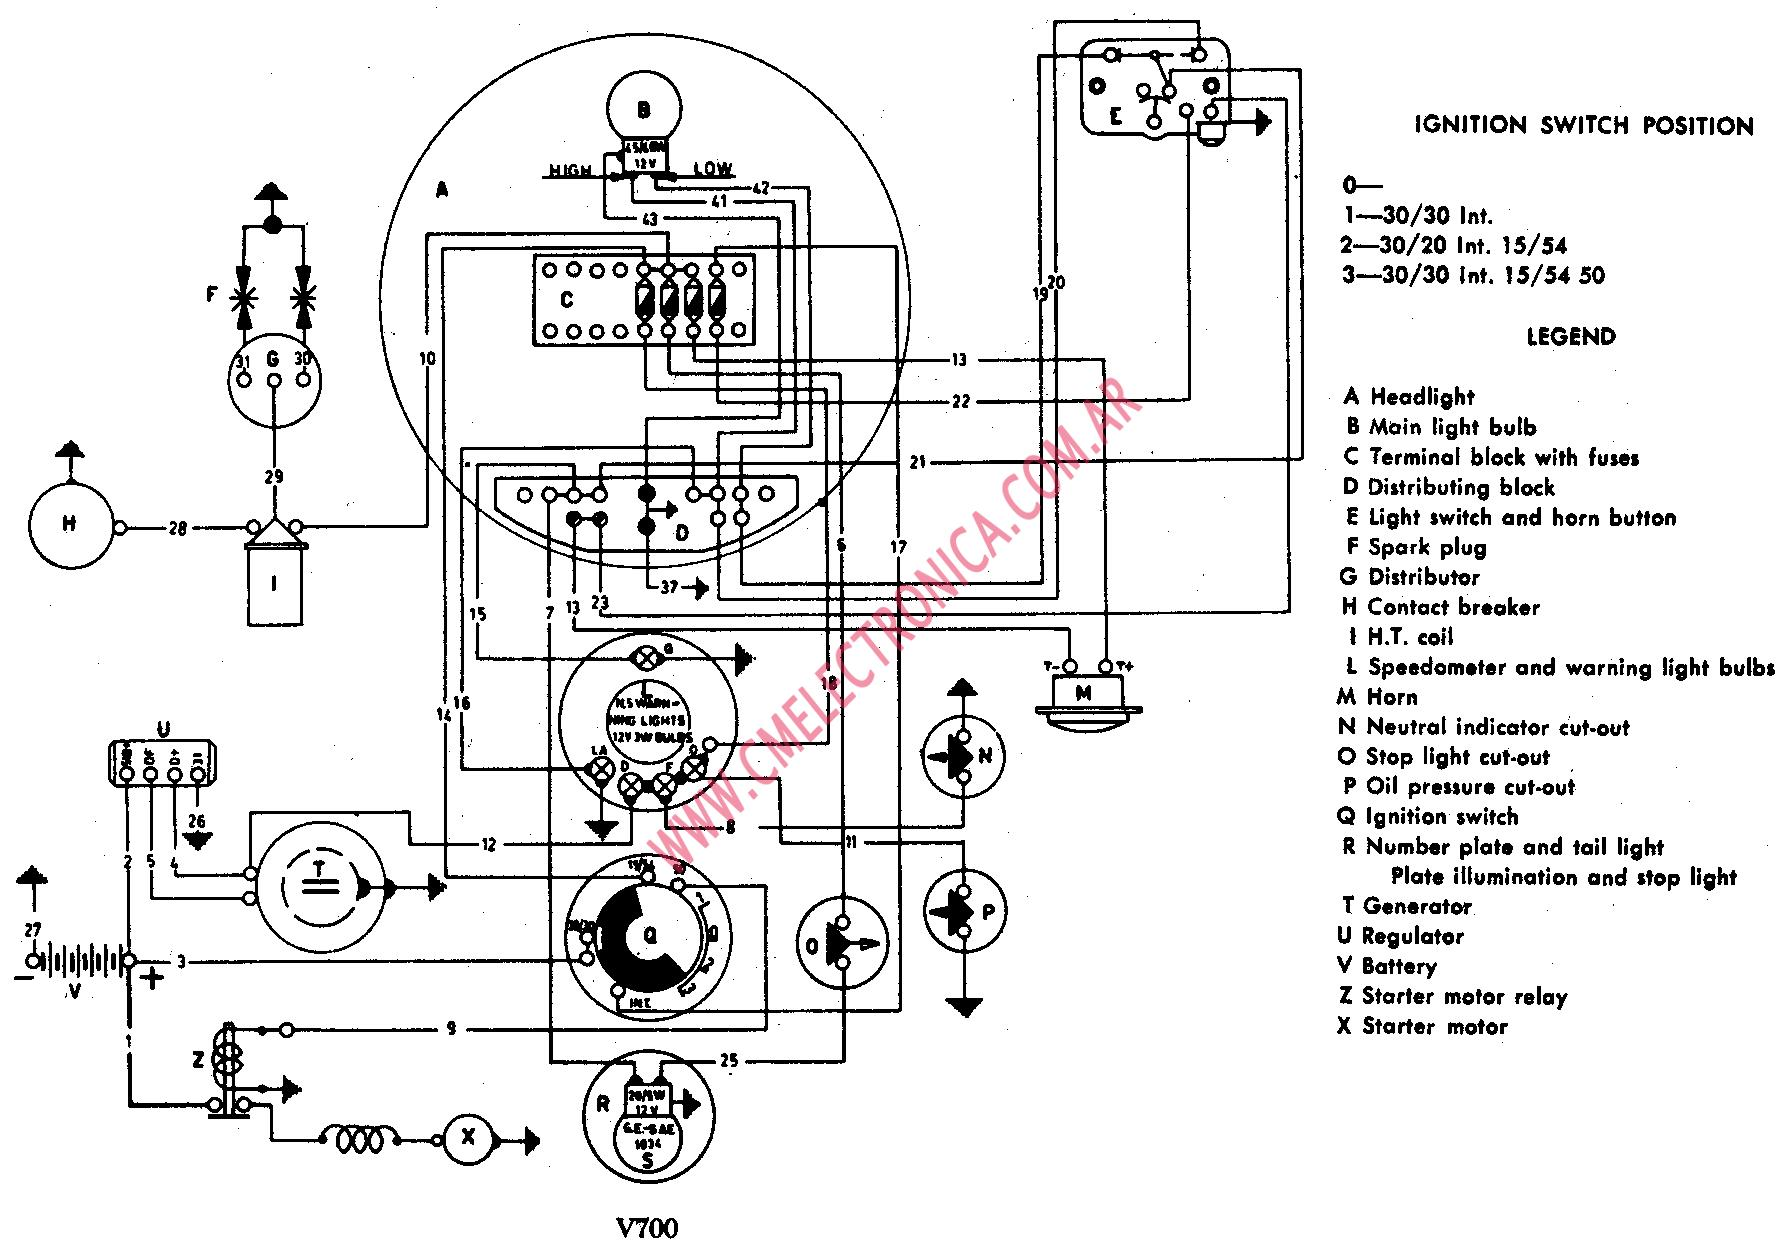 1988 Mercury Outboard Wiring Diagram Diagrams Install Ceiling Light Without Free Download 50 Hp Schematic